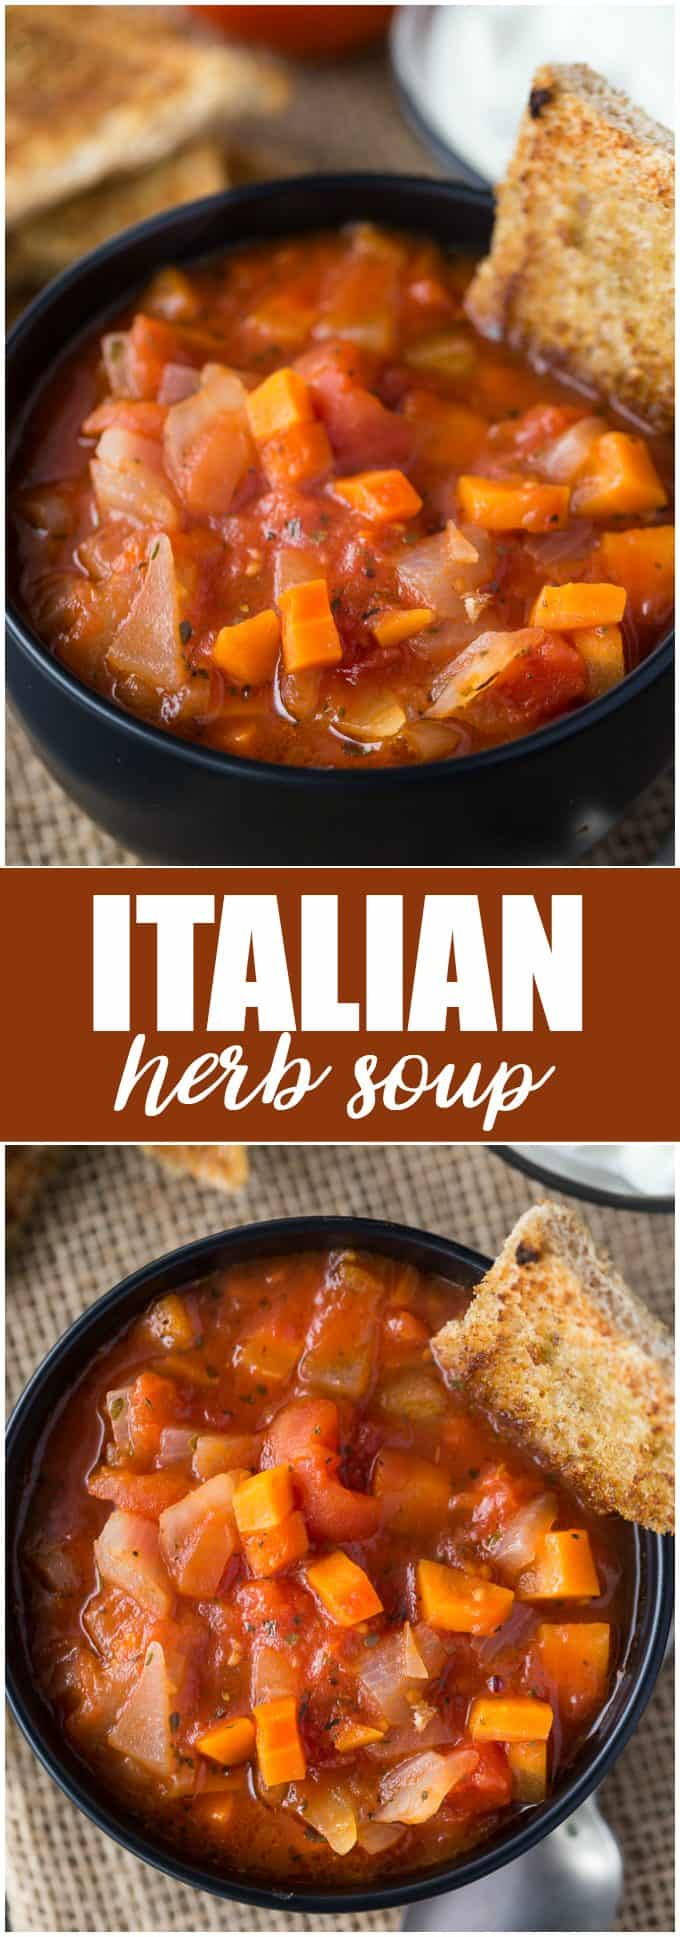 Italian Herb Soup - Served with homemade sage croutons, this hearty soup makes a filling, healthy meal.